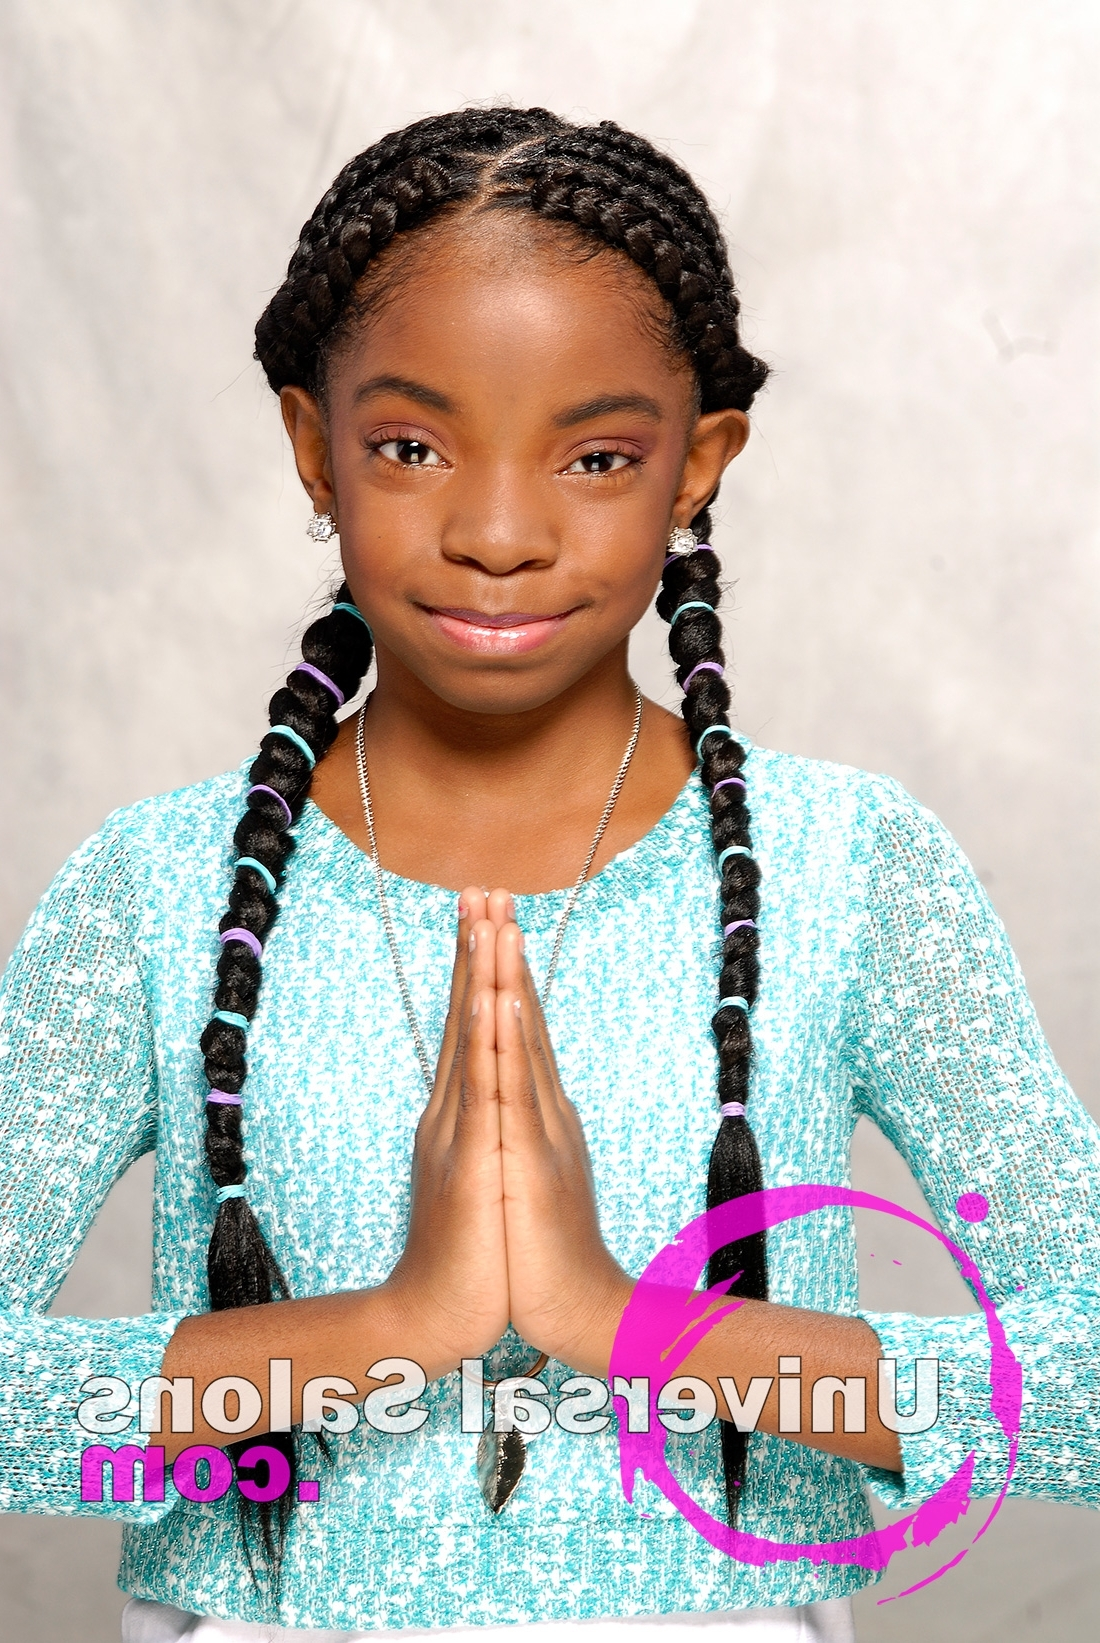 Kid's Cornrow Braids Hairstyle From Shae Thompson For Preferred Cornrows Braid Hairstyles (Gallery 15 of 15)